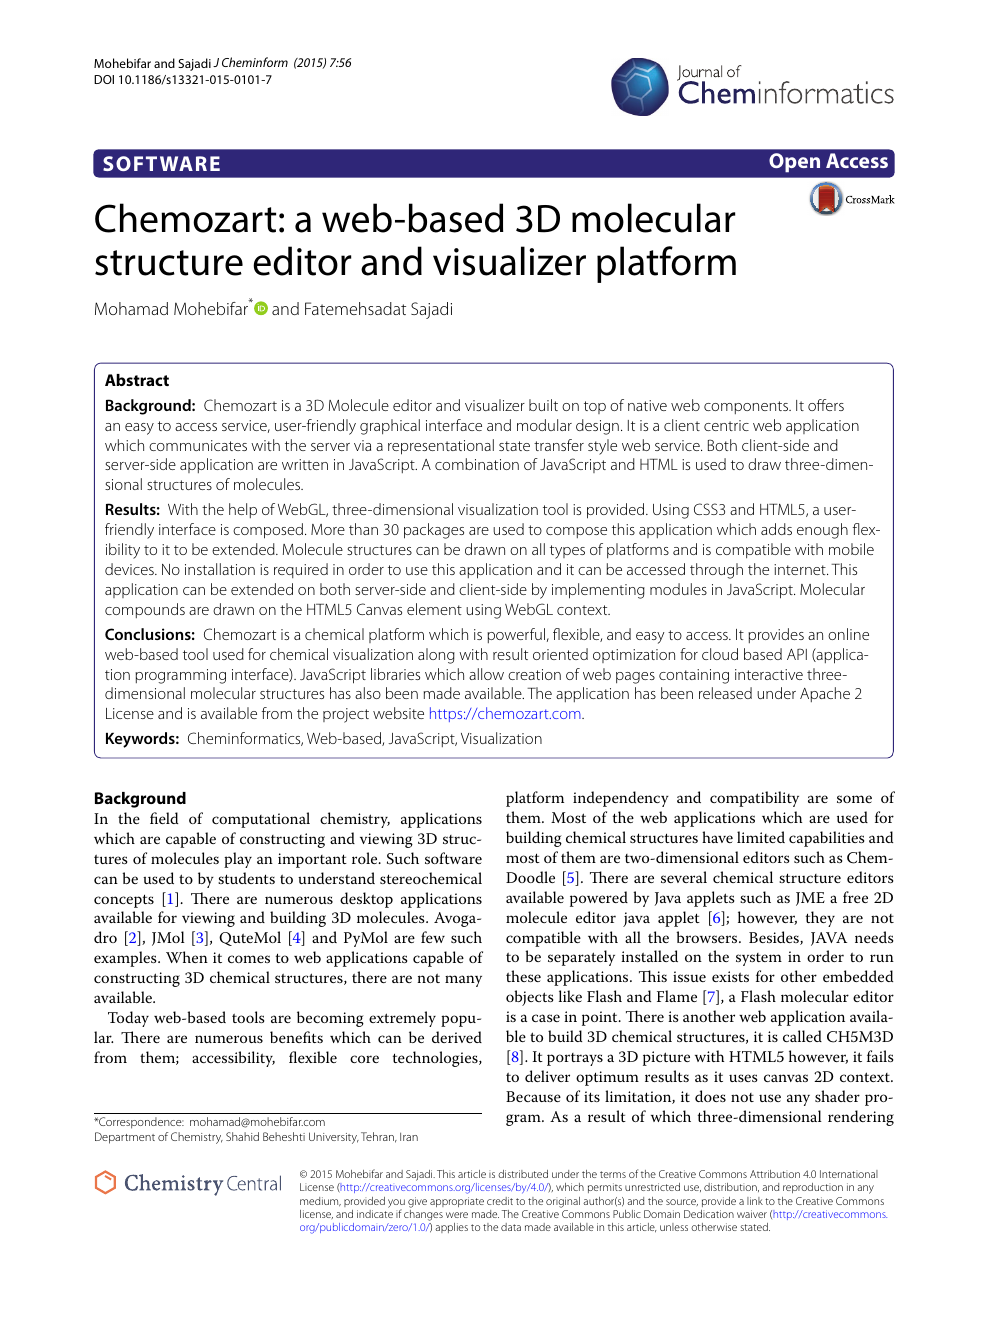 Chemozart: a web-based 3D molecular structure editor and